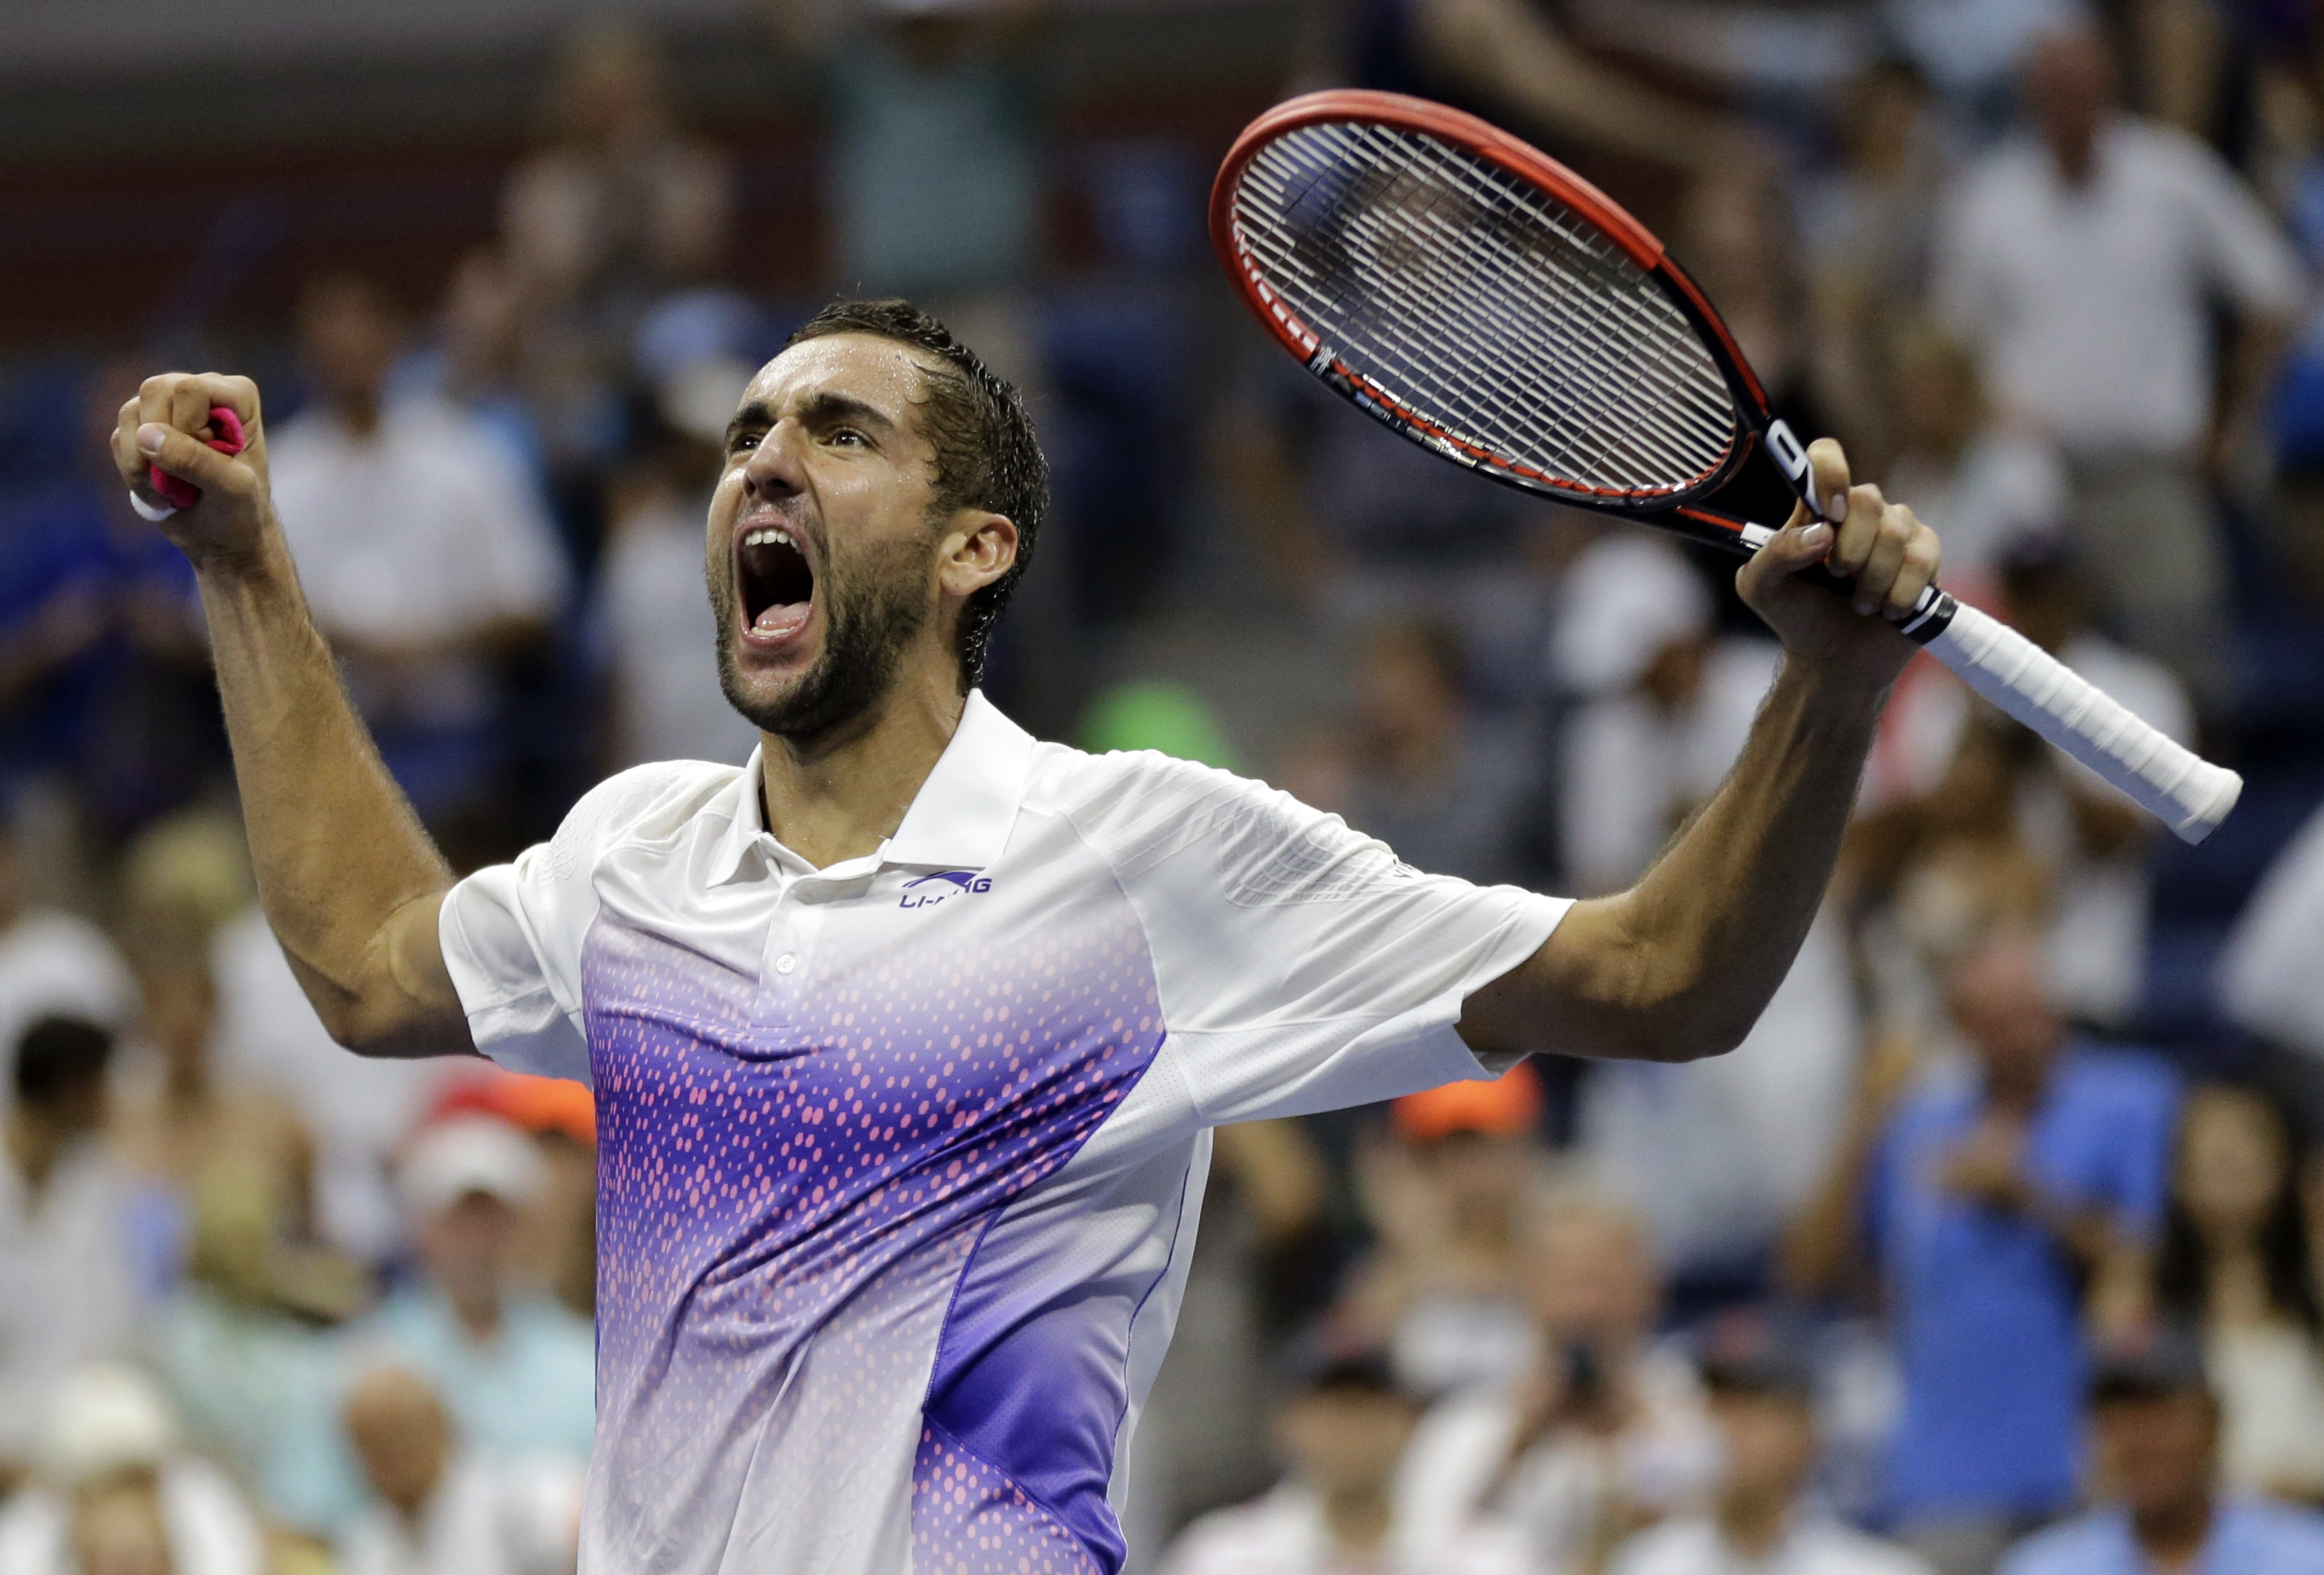 Marin Cilic, of Croatia, reacts after beating Jo-Wilfried Tsonga, of France, during a quarterfinal match at the U.S. Open tennis tournament, Tuesday, Sept. 8, 2015, in New York. (AP Photo/David Goldman)